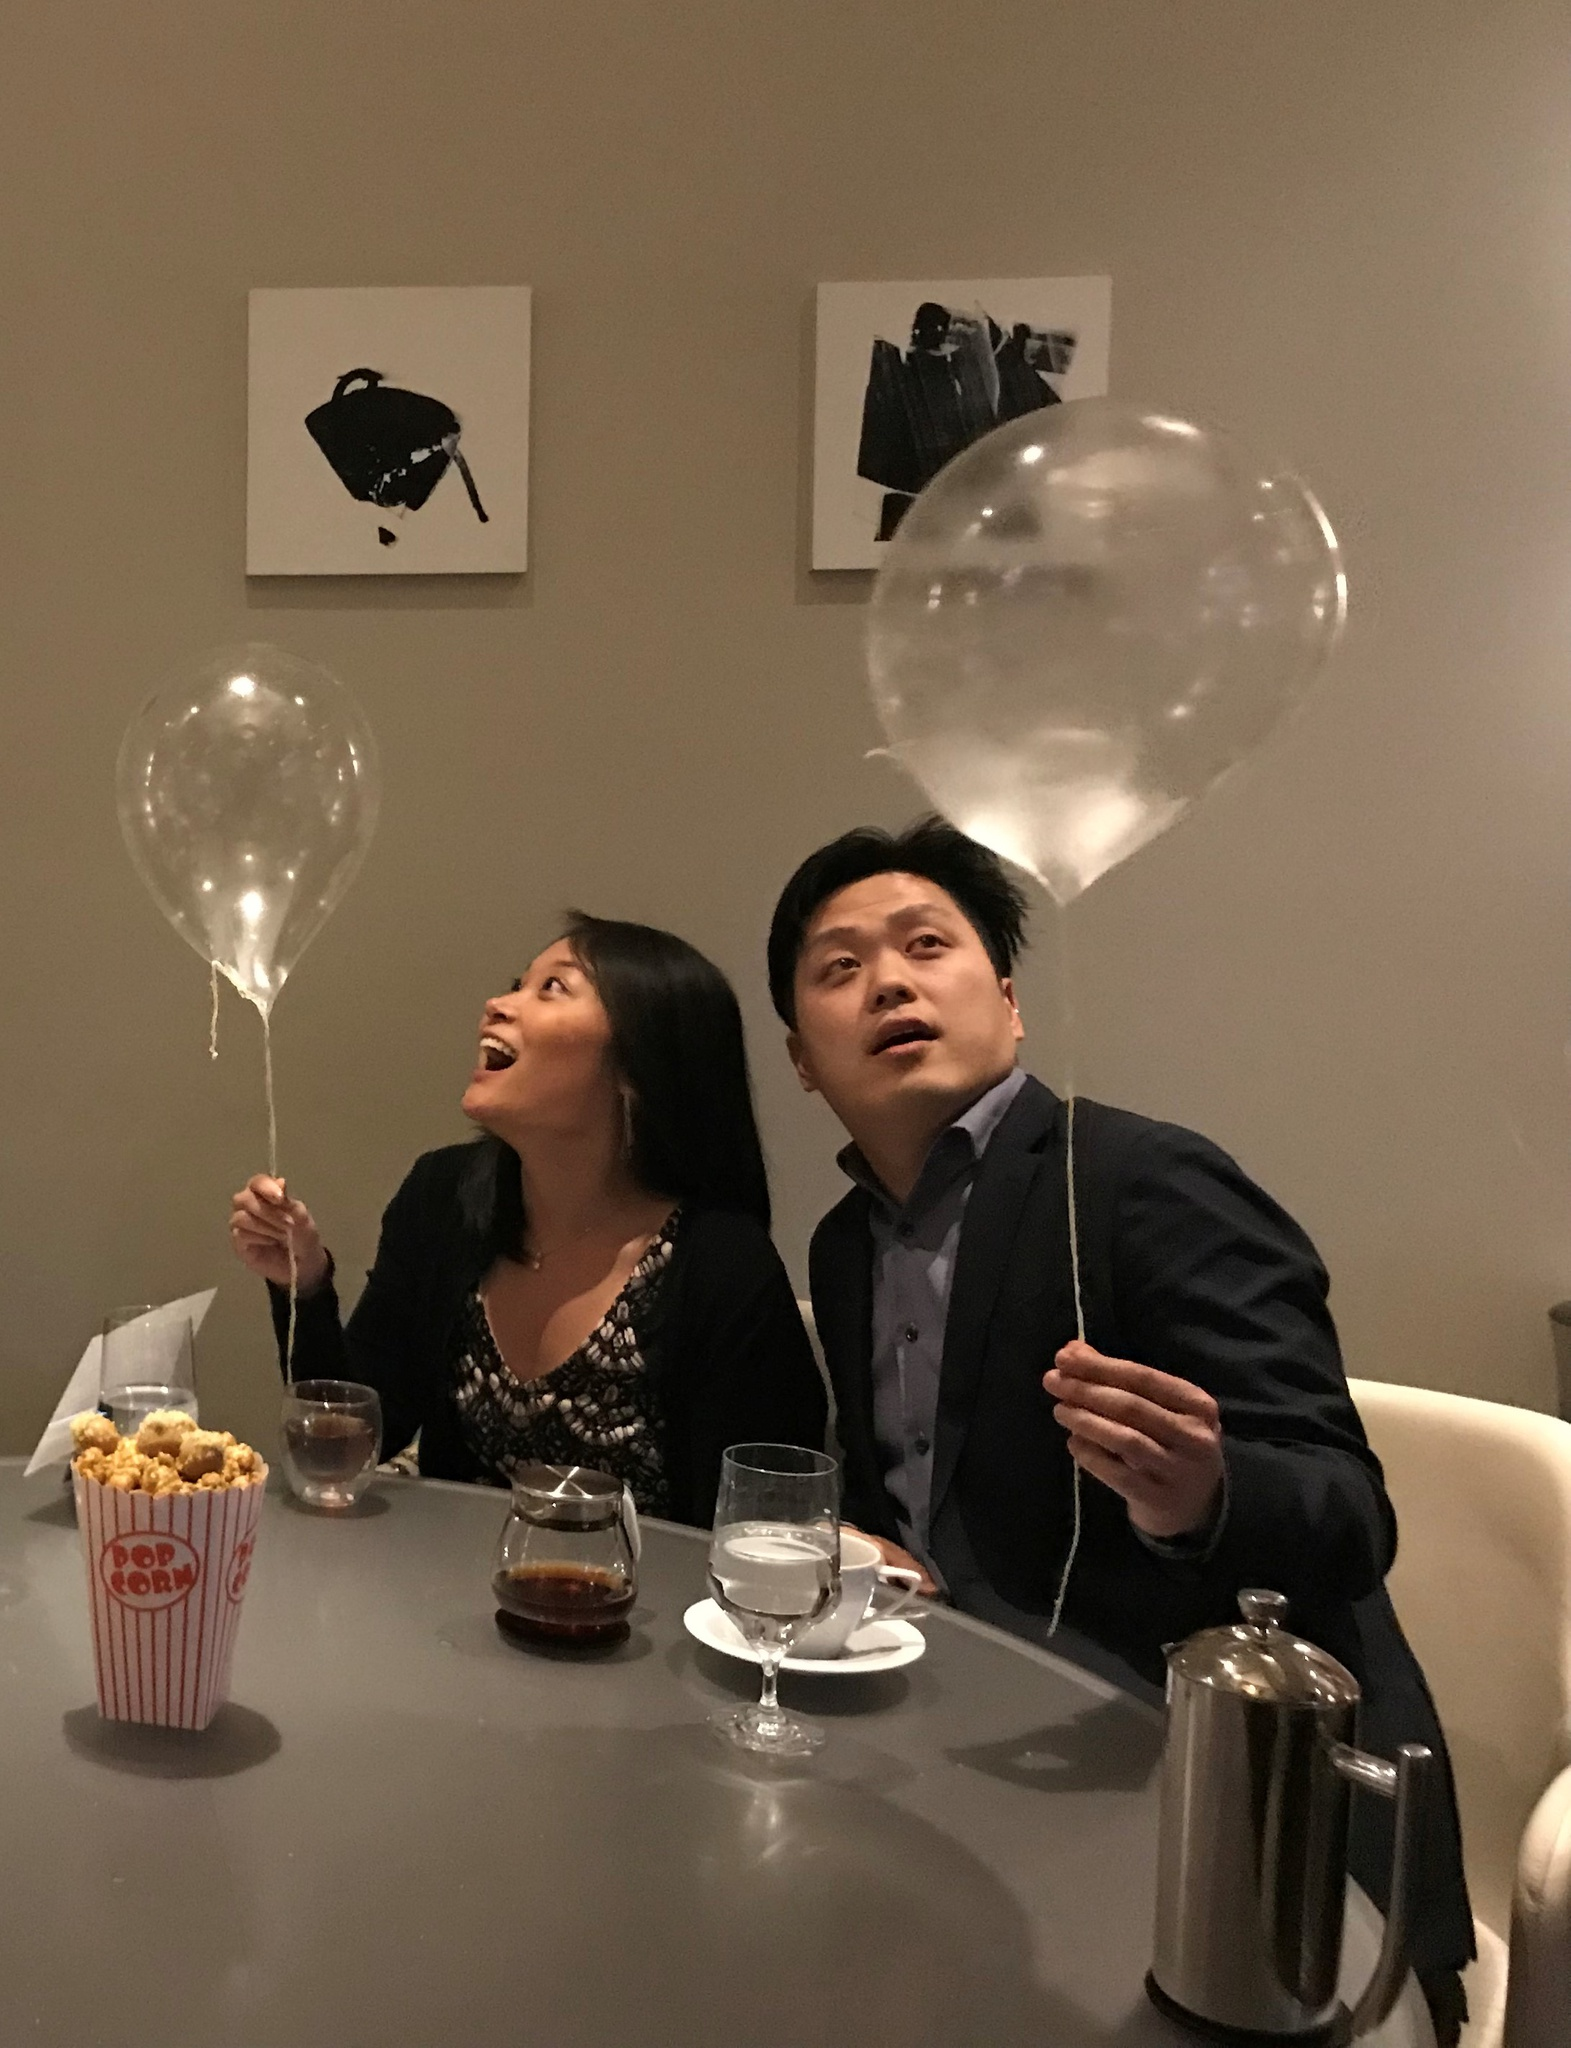 In awe of the edible balloons at Alinea in Chicago